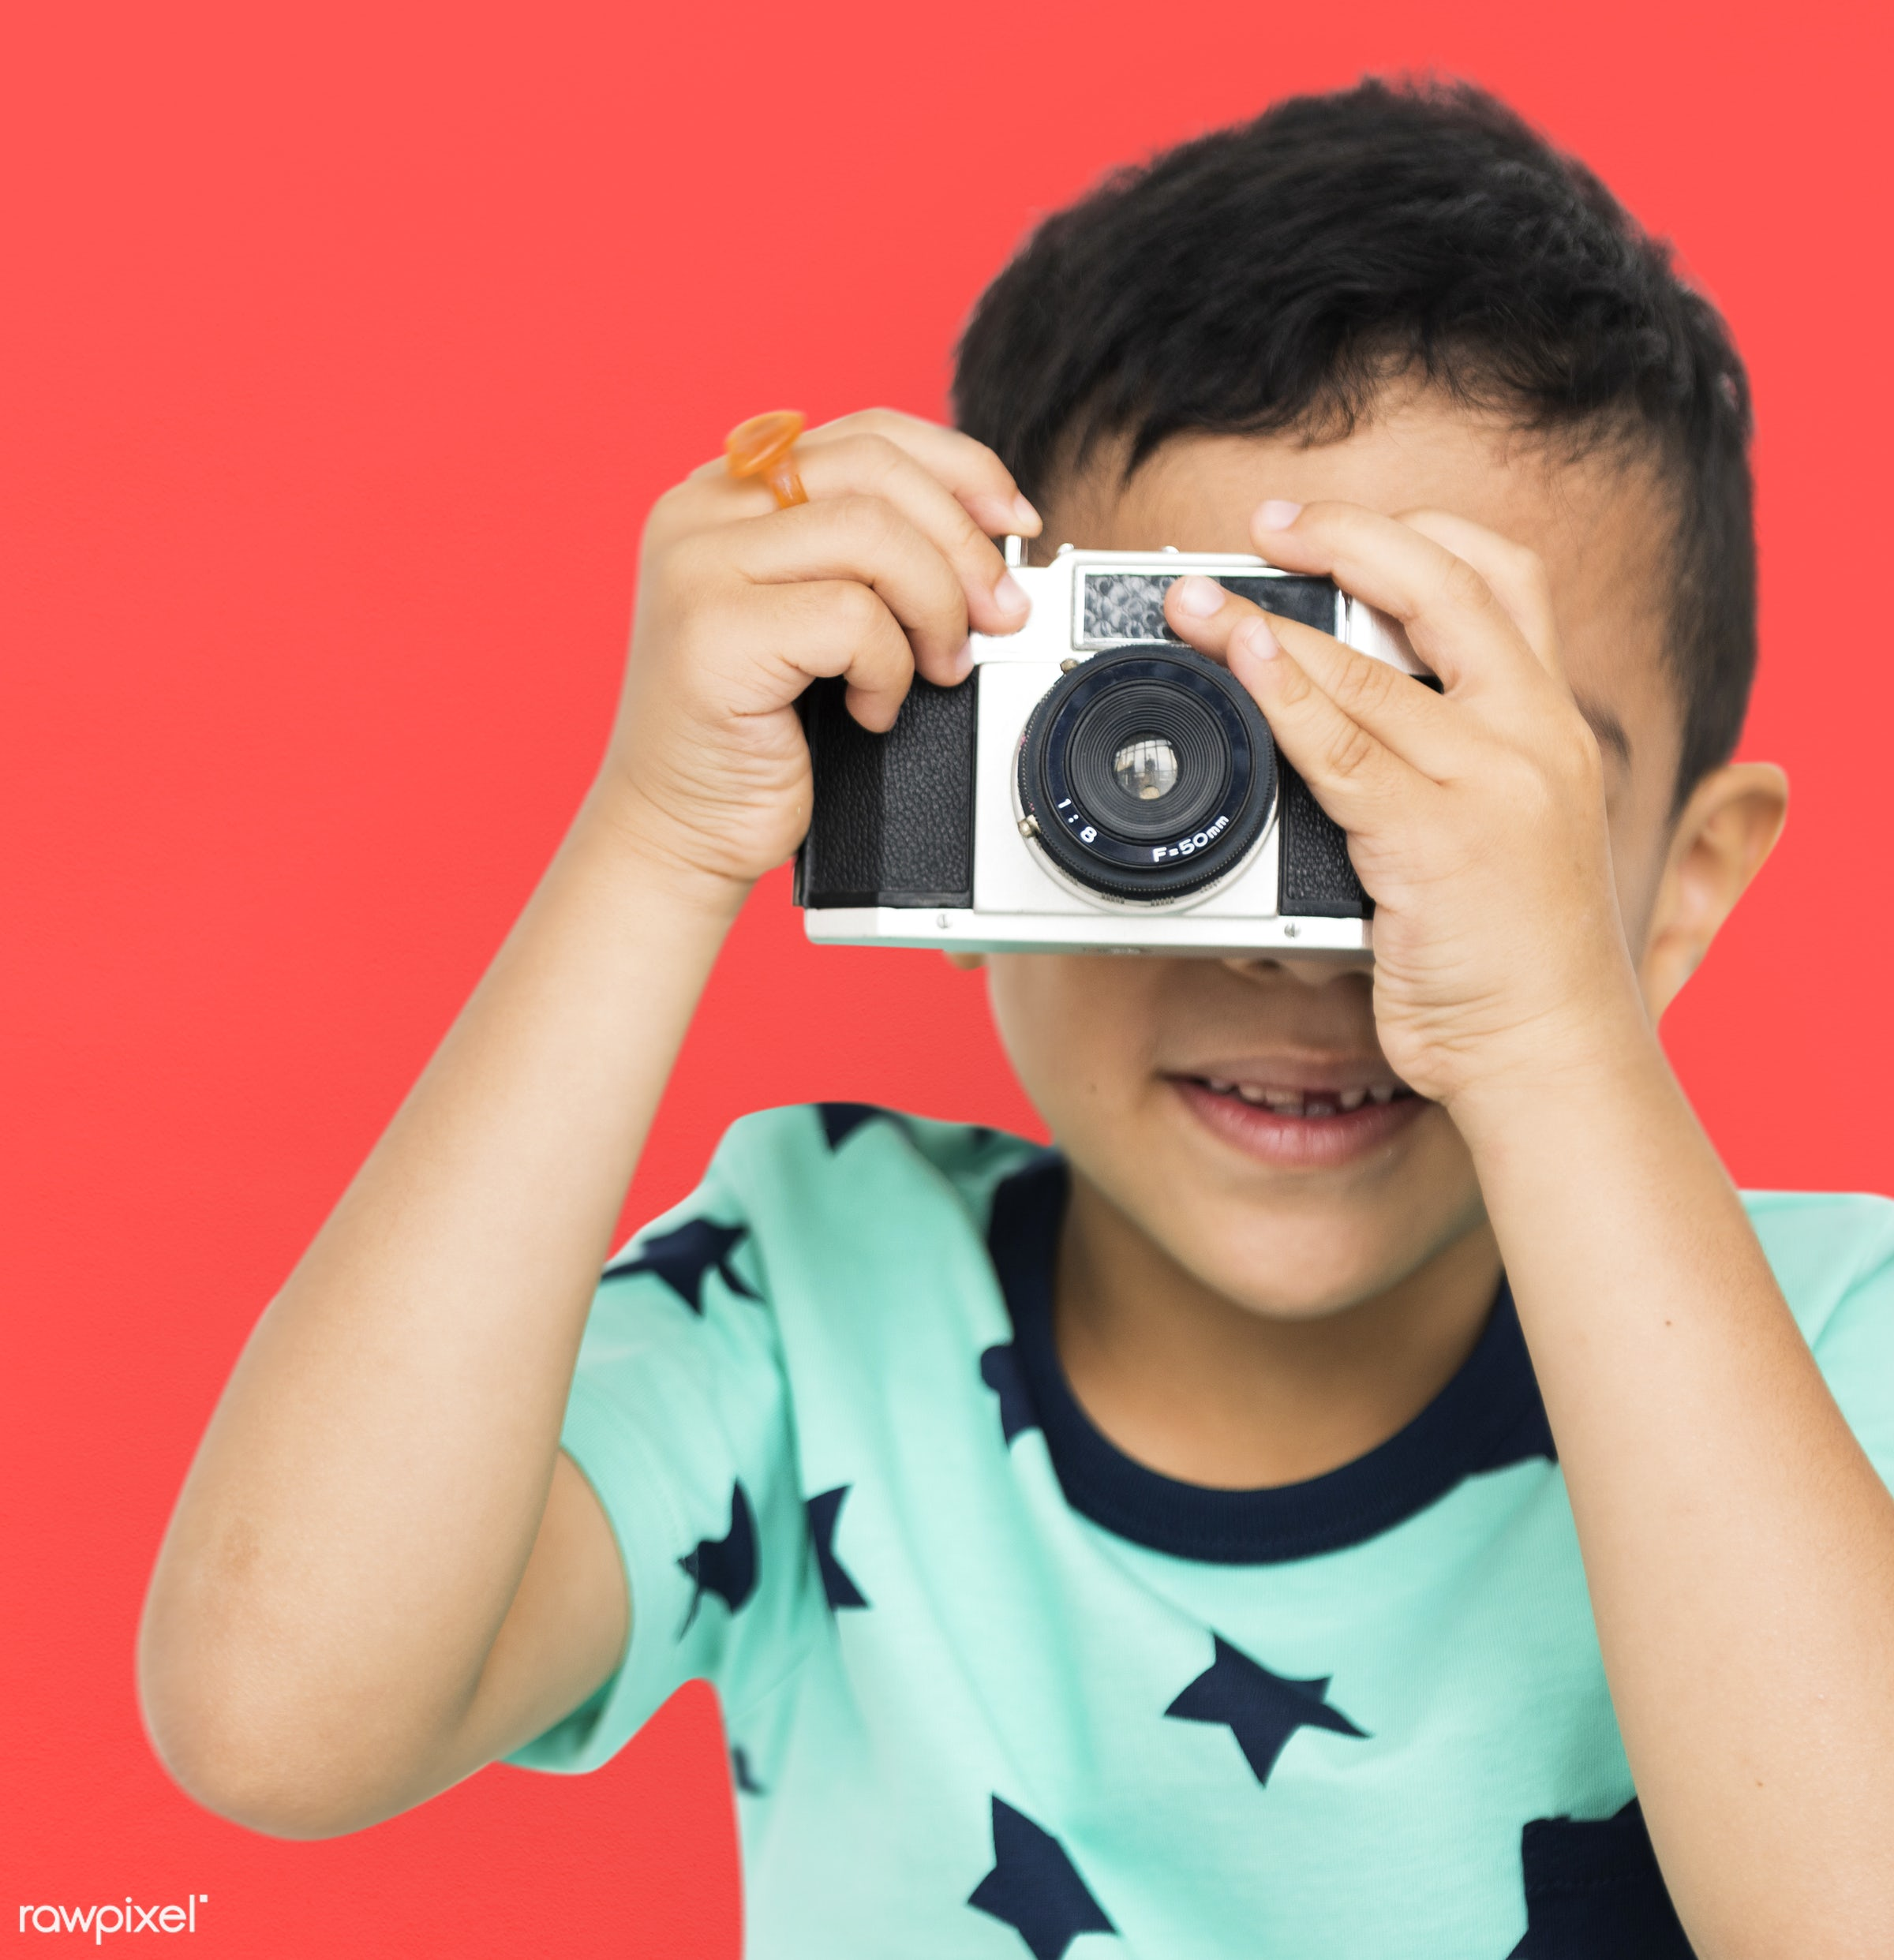 studio, expression, model, person, children, little, cute, digital, people, kid, childhood, cheerful, smiling, isolated,...